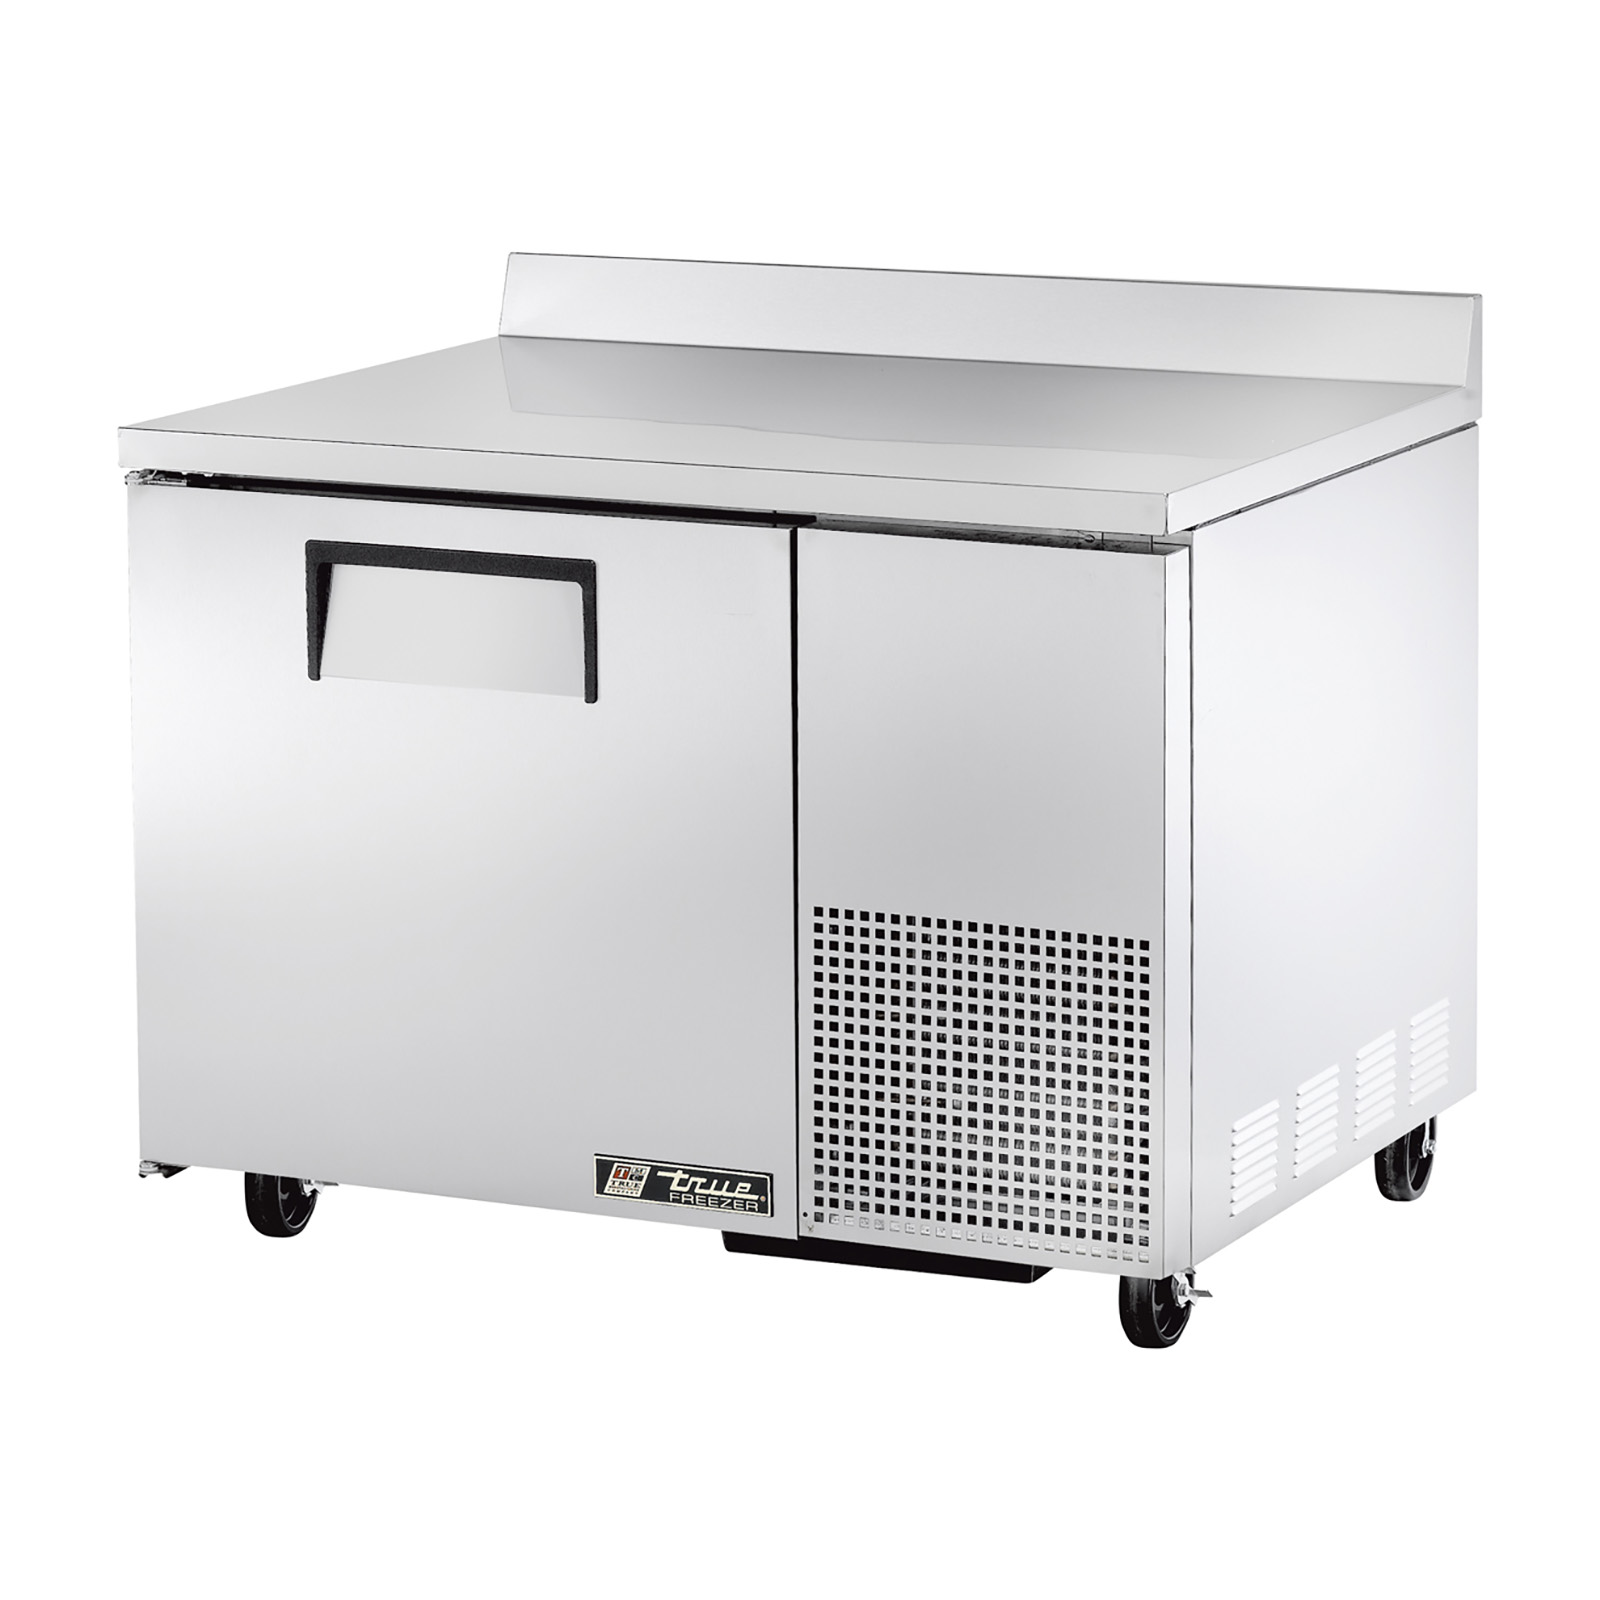 TWT-44F True - Deep Work Top Freezer one-section